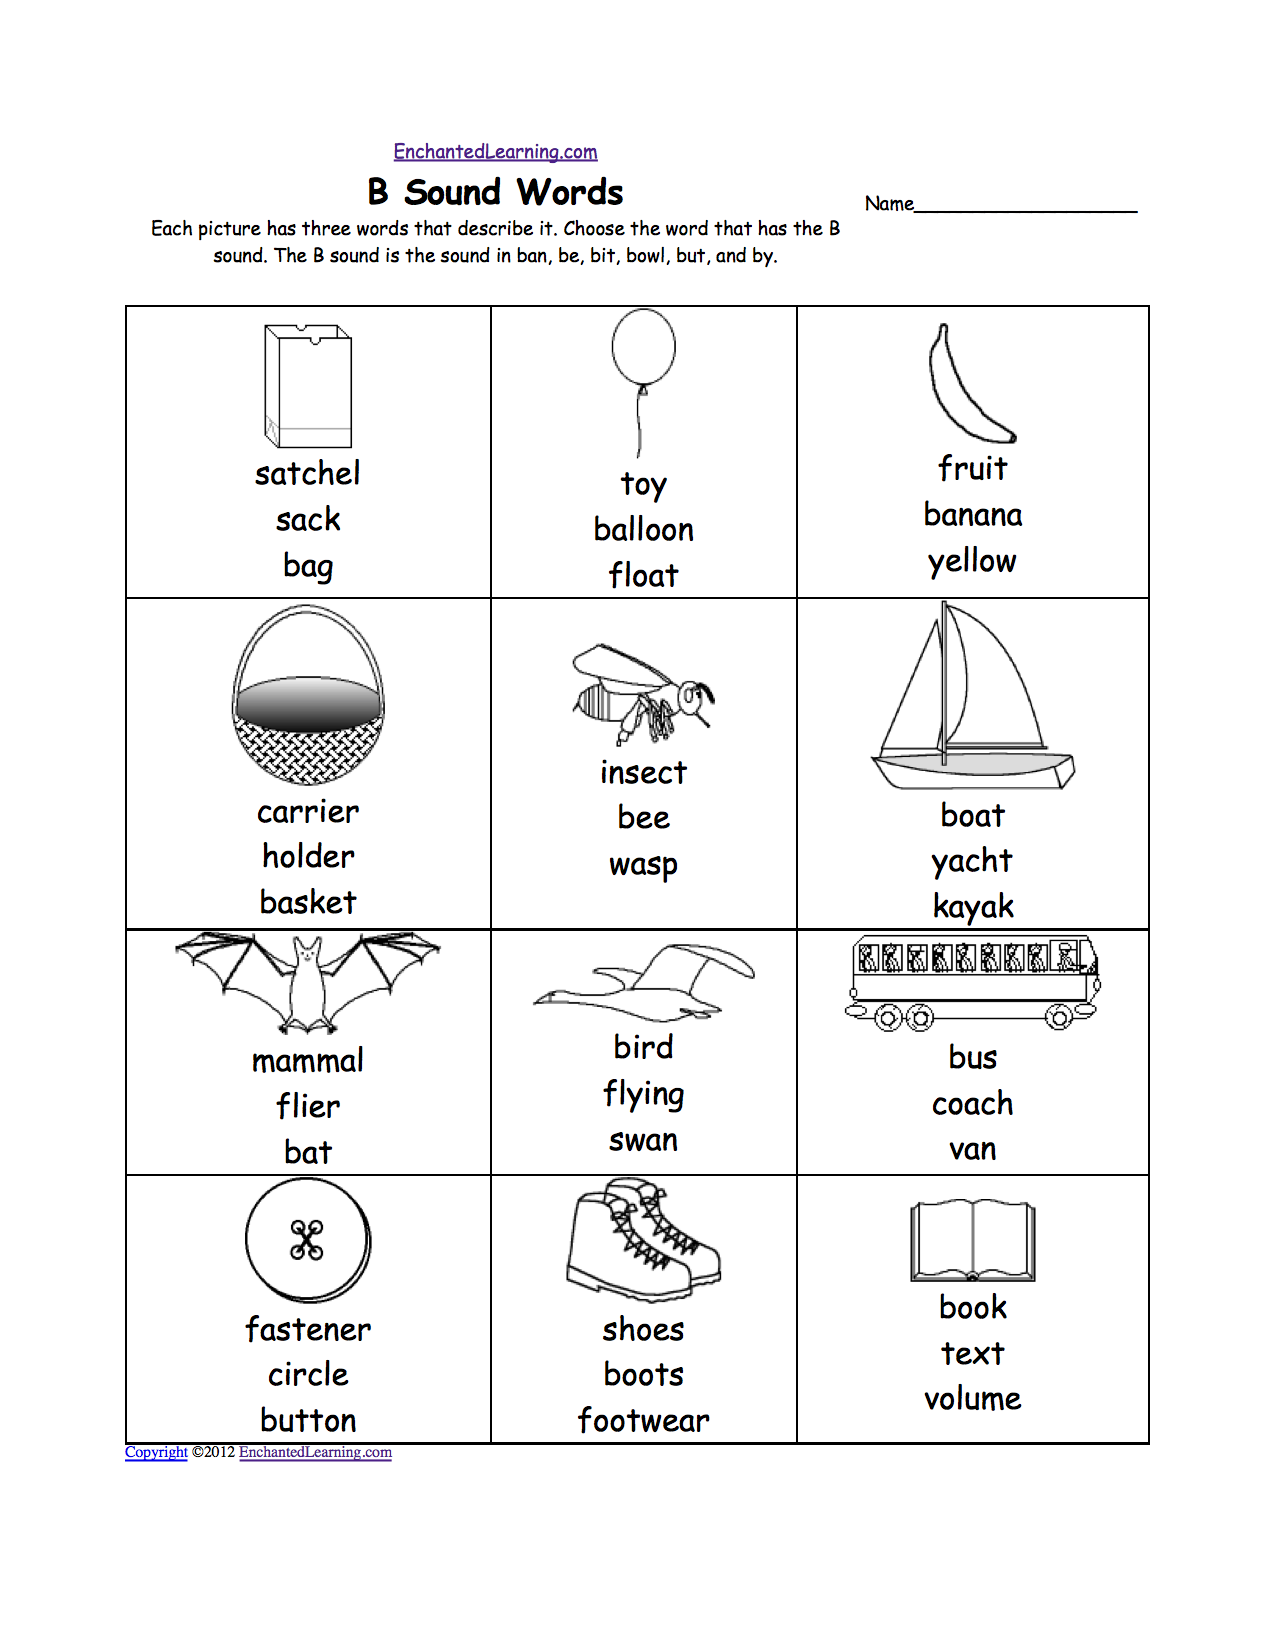 Aldiablosus  Pleasant Phonics Worksheets Multiple Choice Worksheets To Print  With Inspiring Quotbquot Sound Phonics Worksheet Multiple Choice Each Picture Has Three Words That Describe It Choose The Word That Has A Quotbquot Sound The Quotbquot Sound Is The Sound  With Delectable Subtraction Borrowing Worksheets Also Preschool Printables Worksheets In Addition Harcourt Science Grade  Worksheets And Spanish Time Worksheets As Well As Th Grade Sequencing Worksheets Additionally Kindergarten Health Worksheets From Enchantedlearningcom With Aldiablosus  Inspiring Phonics Worksheets Multiple Choice Worksheets To Print  With Delectable Quotbquot Sound Phonics Worksheet Multiple Choice Each Picture Has Three Words That Describe It Choose The Word That Has A Quotbquot Sound The Quotbquot Sound Is The Sound  And Pleasant Subtraction Borrowing Worksheets Also Preschool Printables Worksheets In Addition Harcourt Science Grade  Worksheets From Enchantedlearningcom